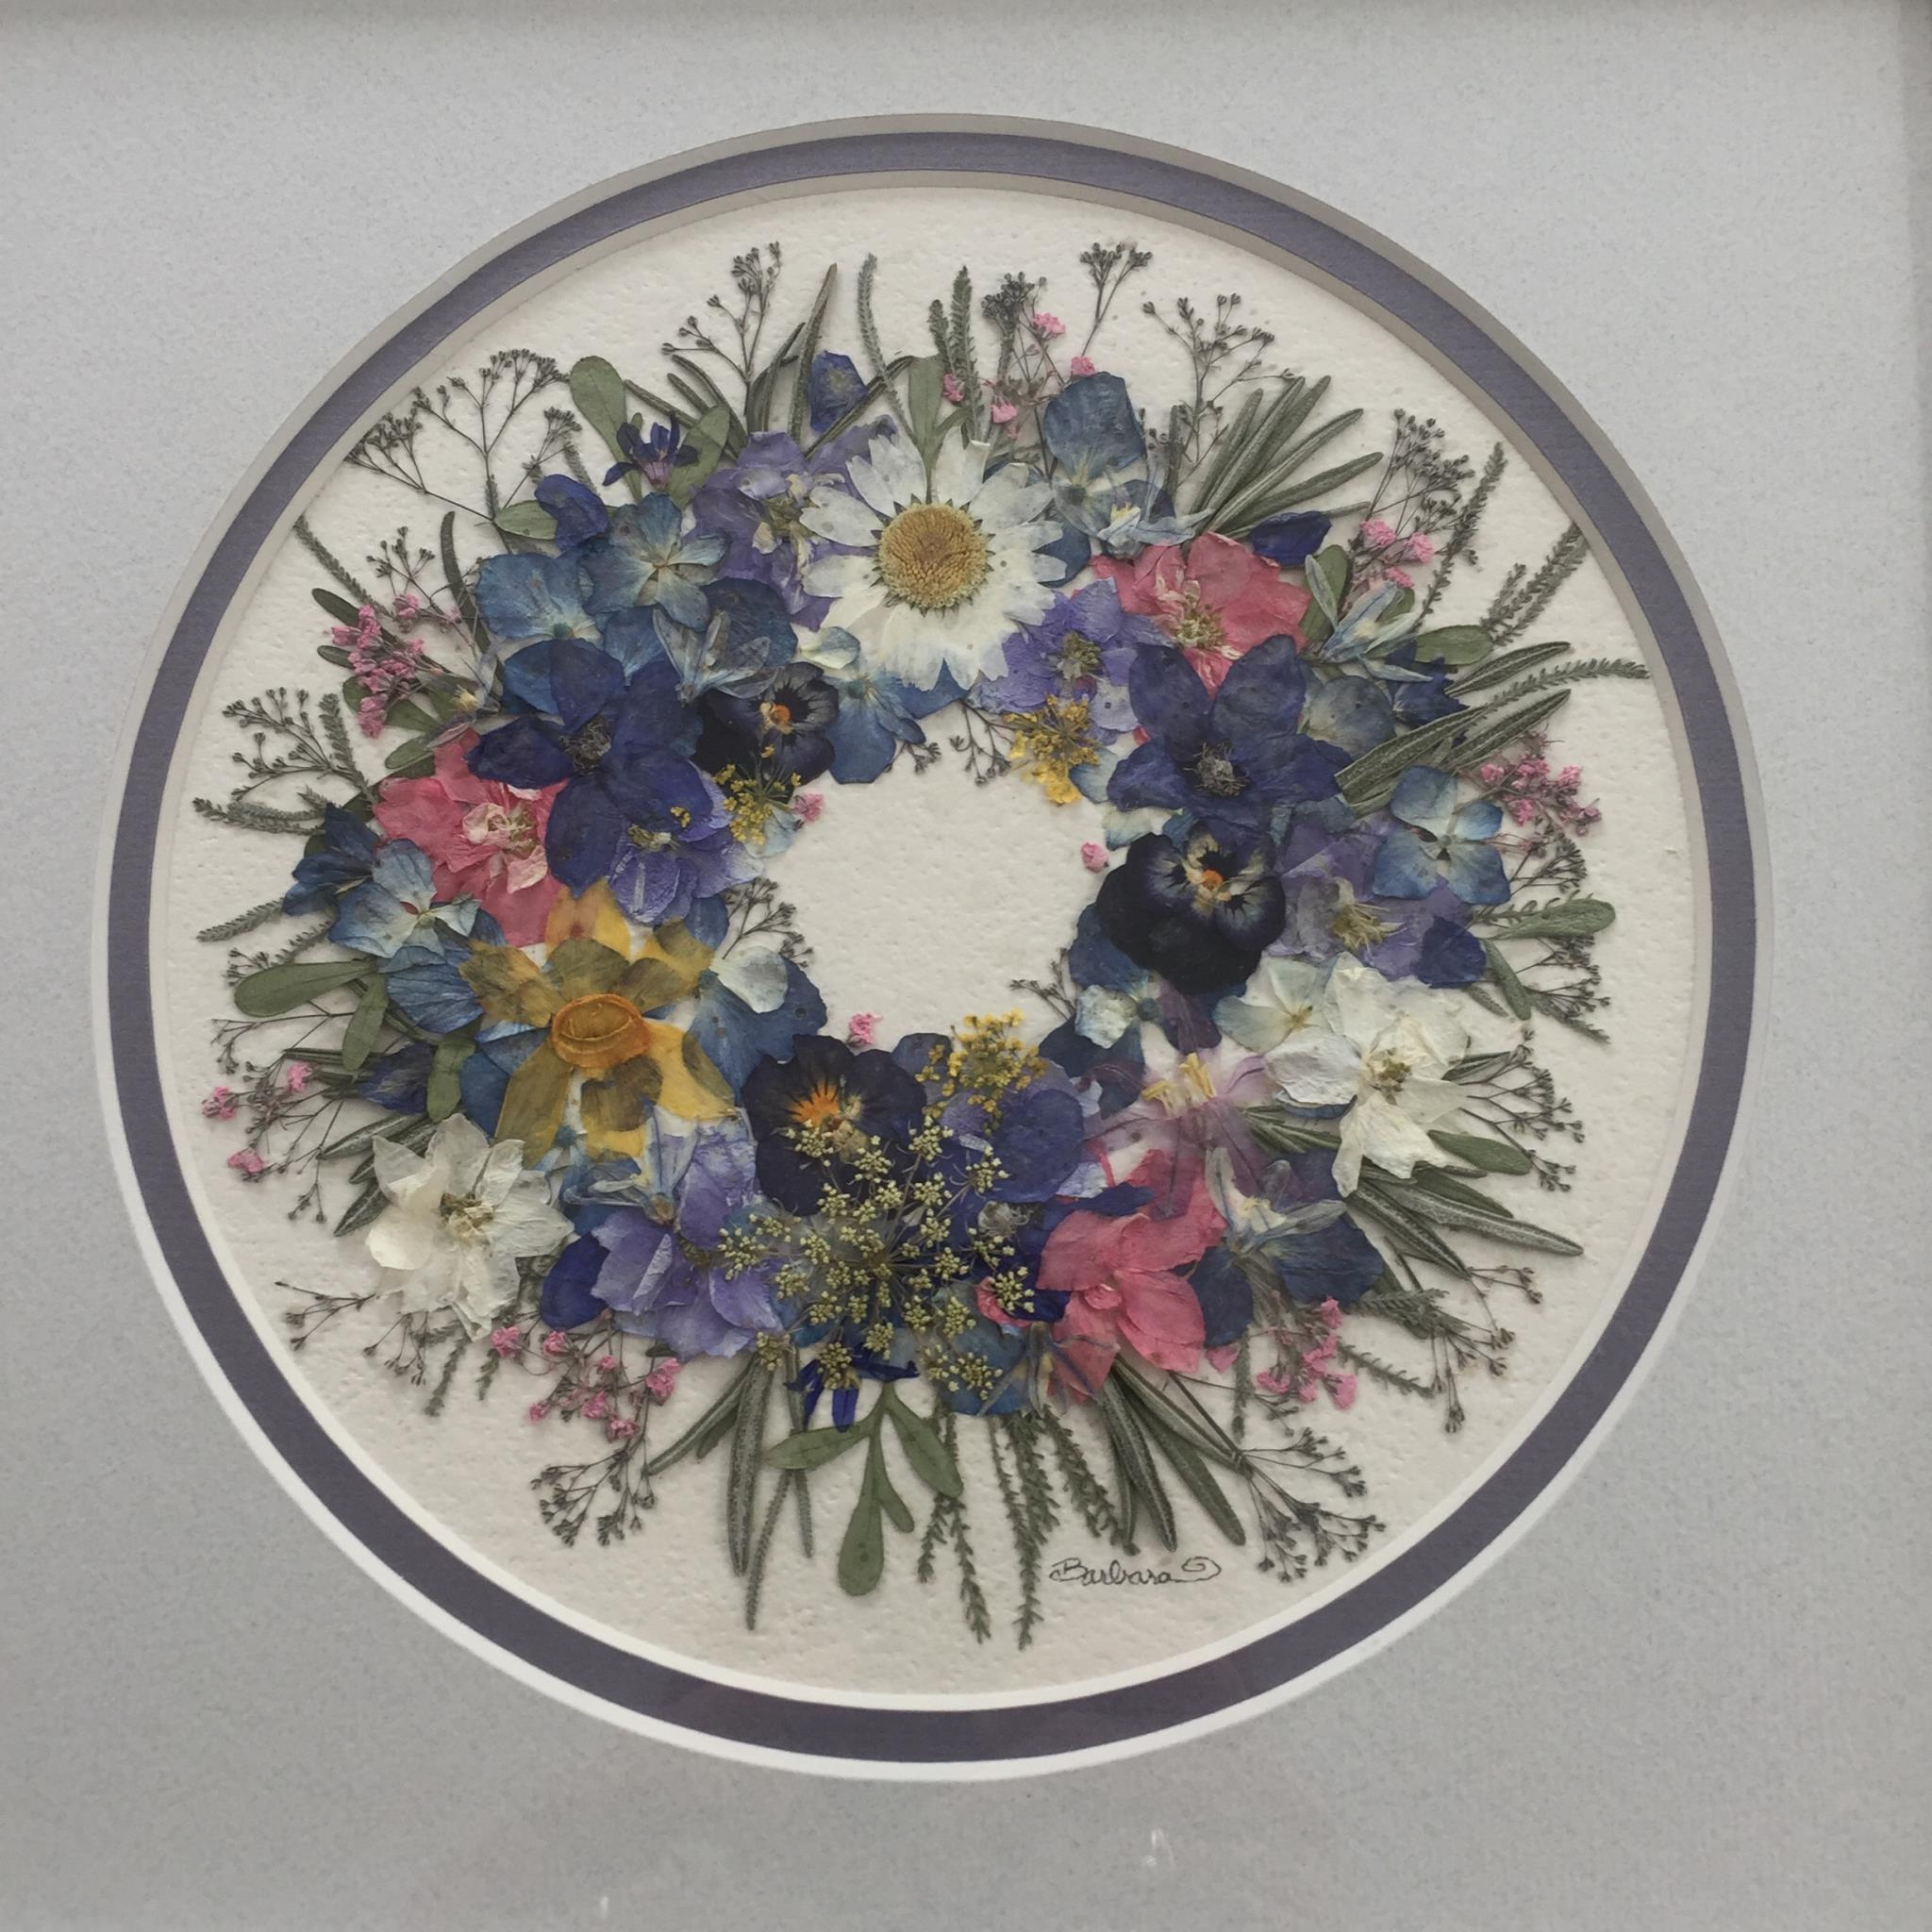 Musolf/Saalfeld, framed pressed flower and herb wreath.